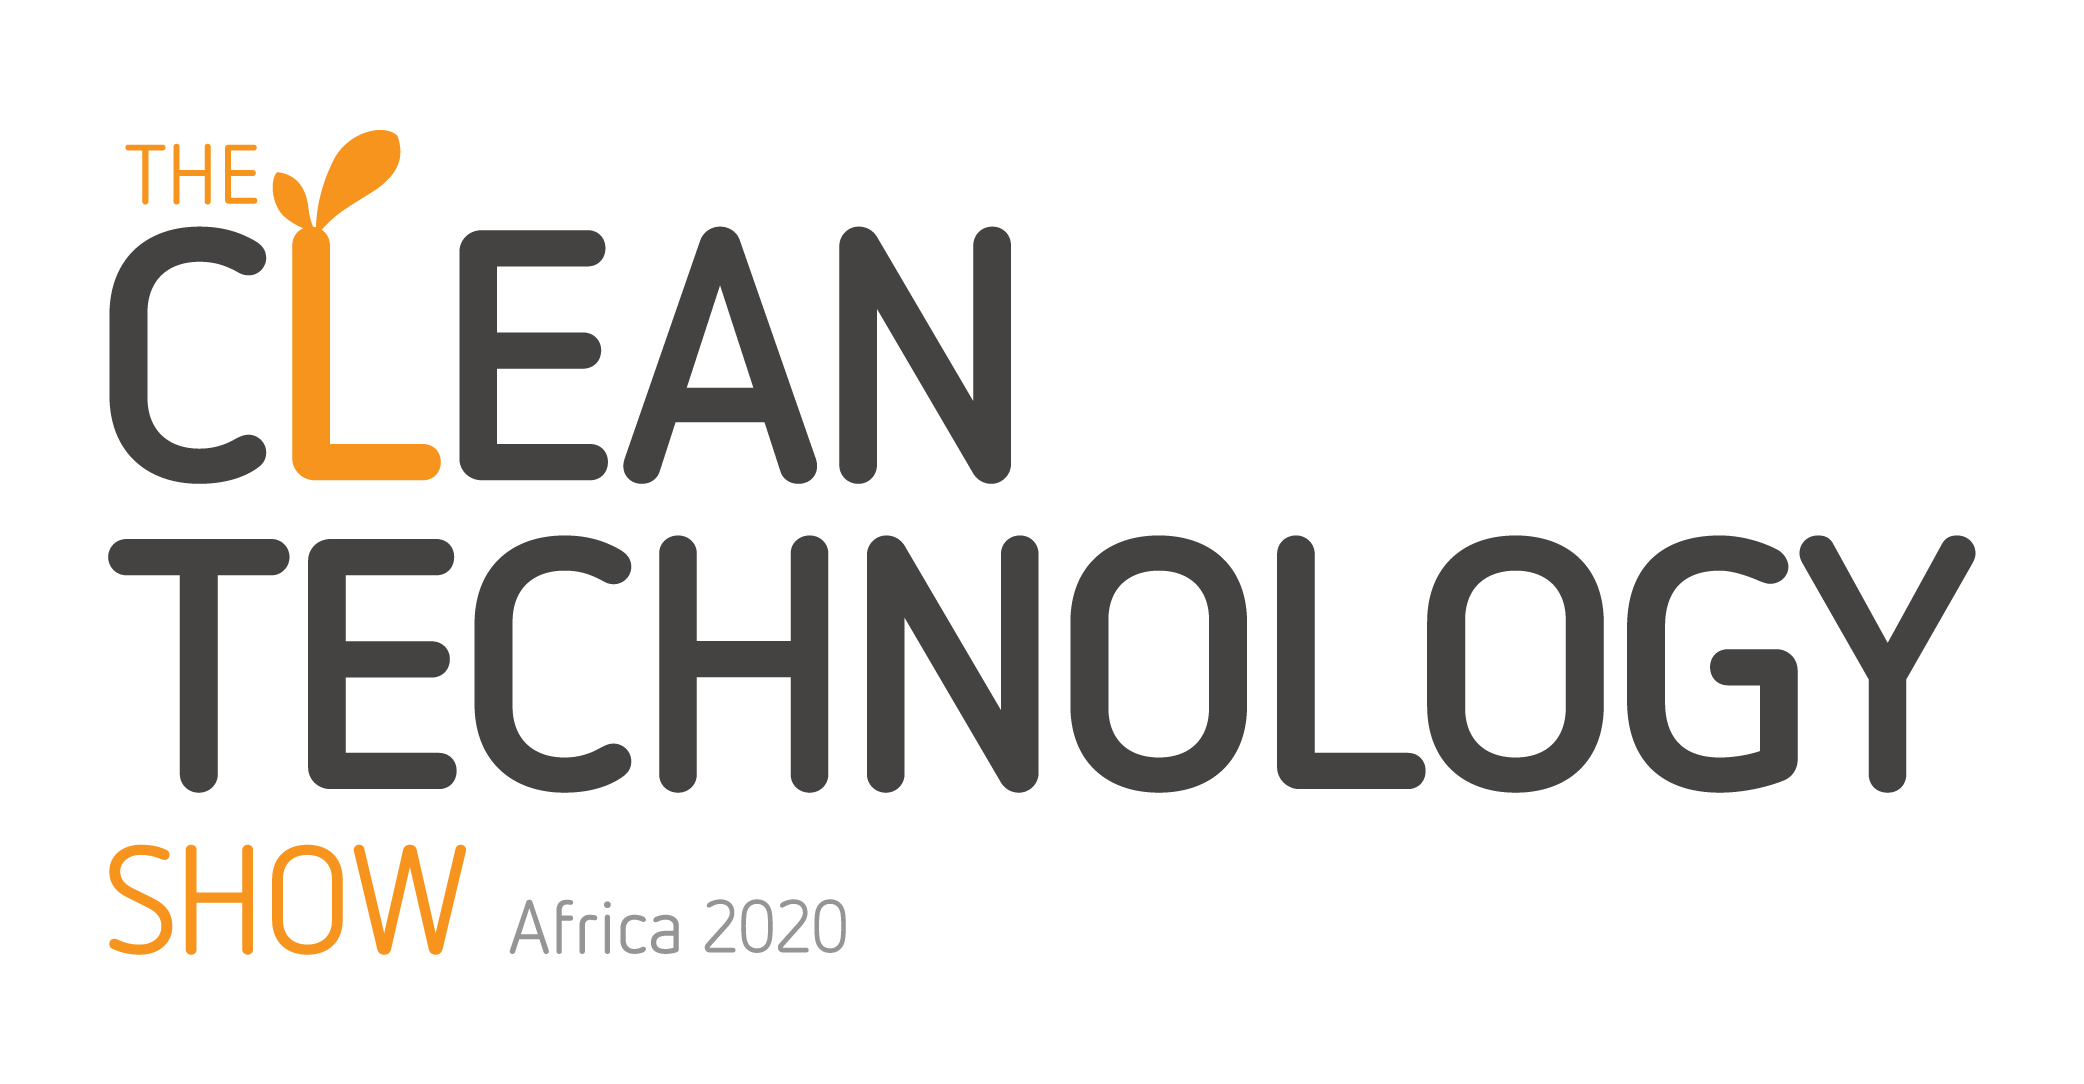 Power & Electricity World Africa 2020 | 31 March 2020 - 1